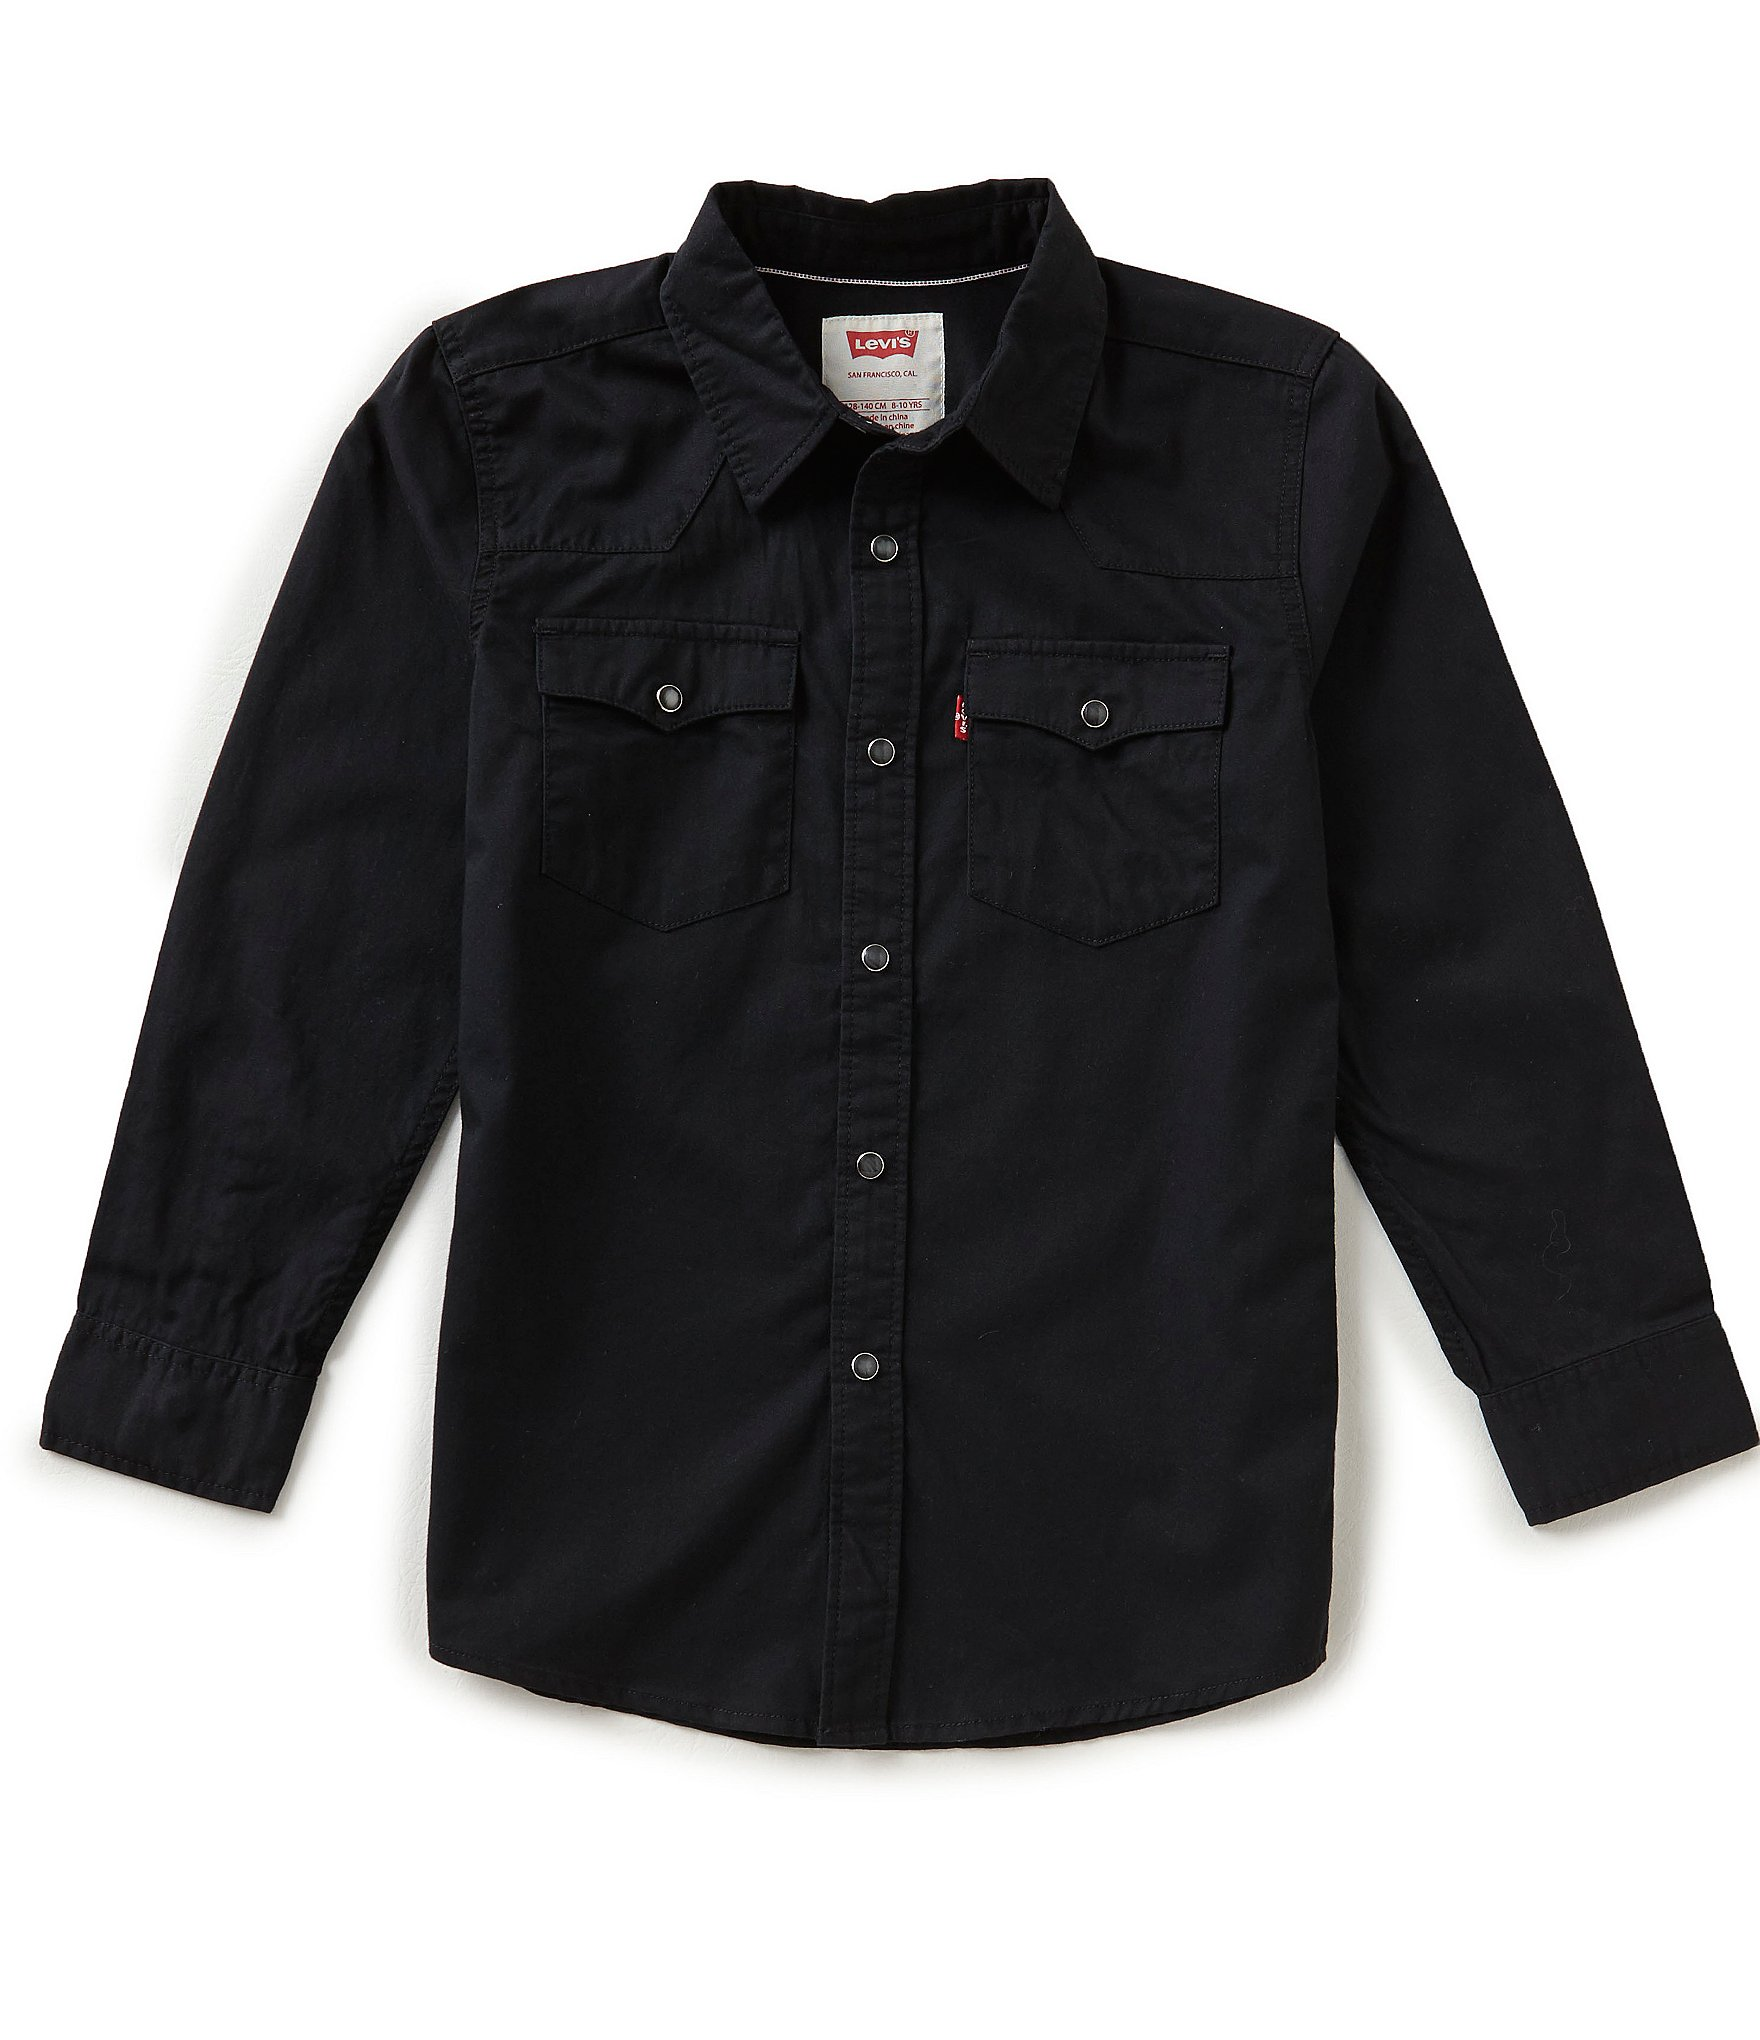 Levi S 8 20 Barstow Western Denim Shirt Dillards